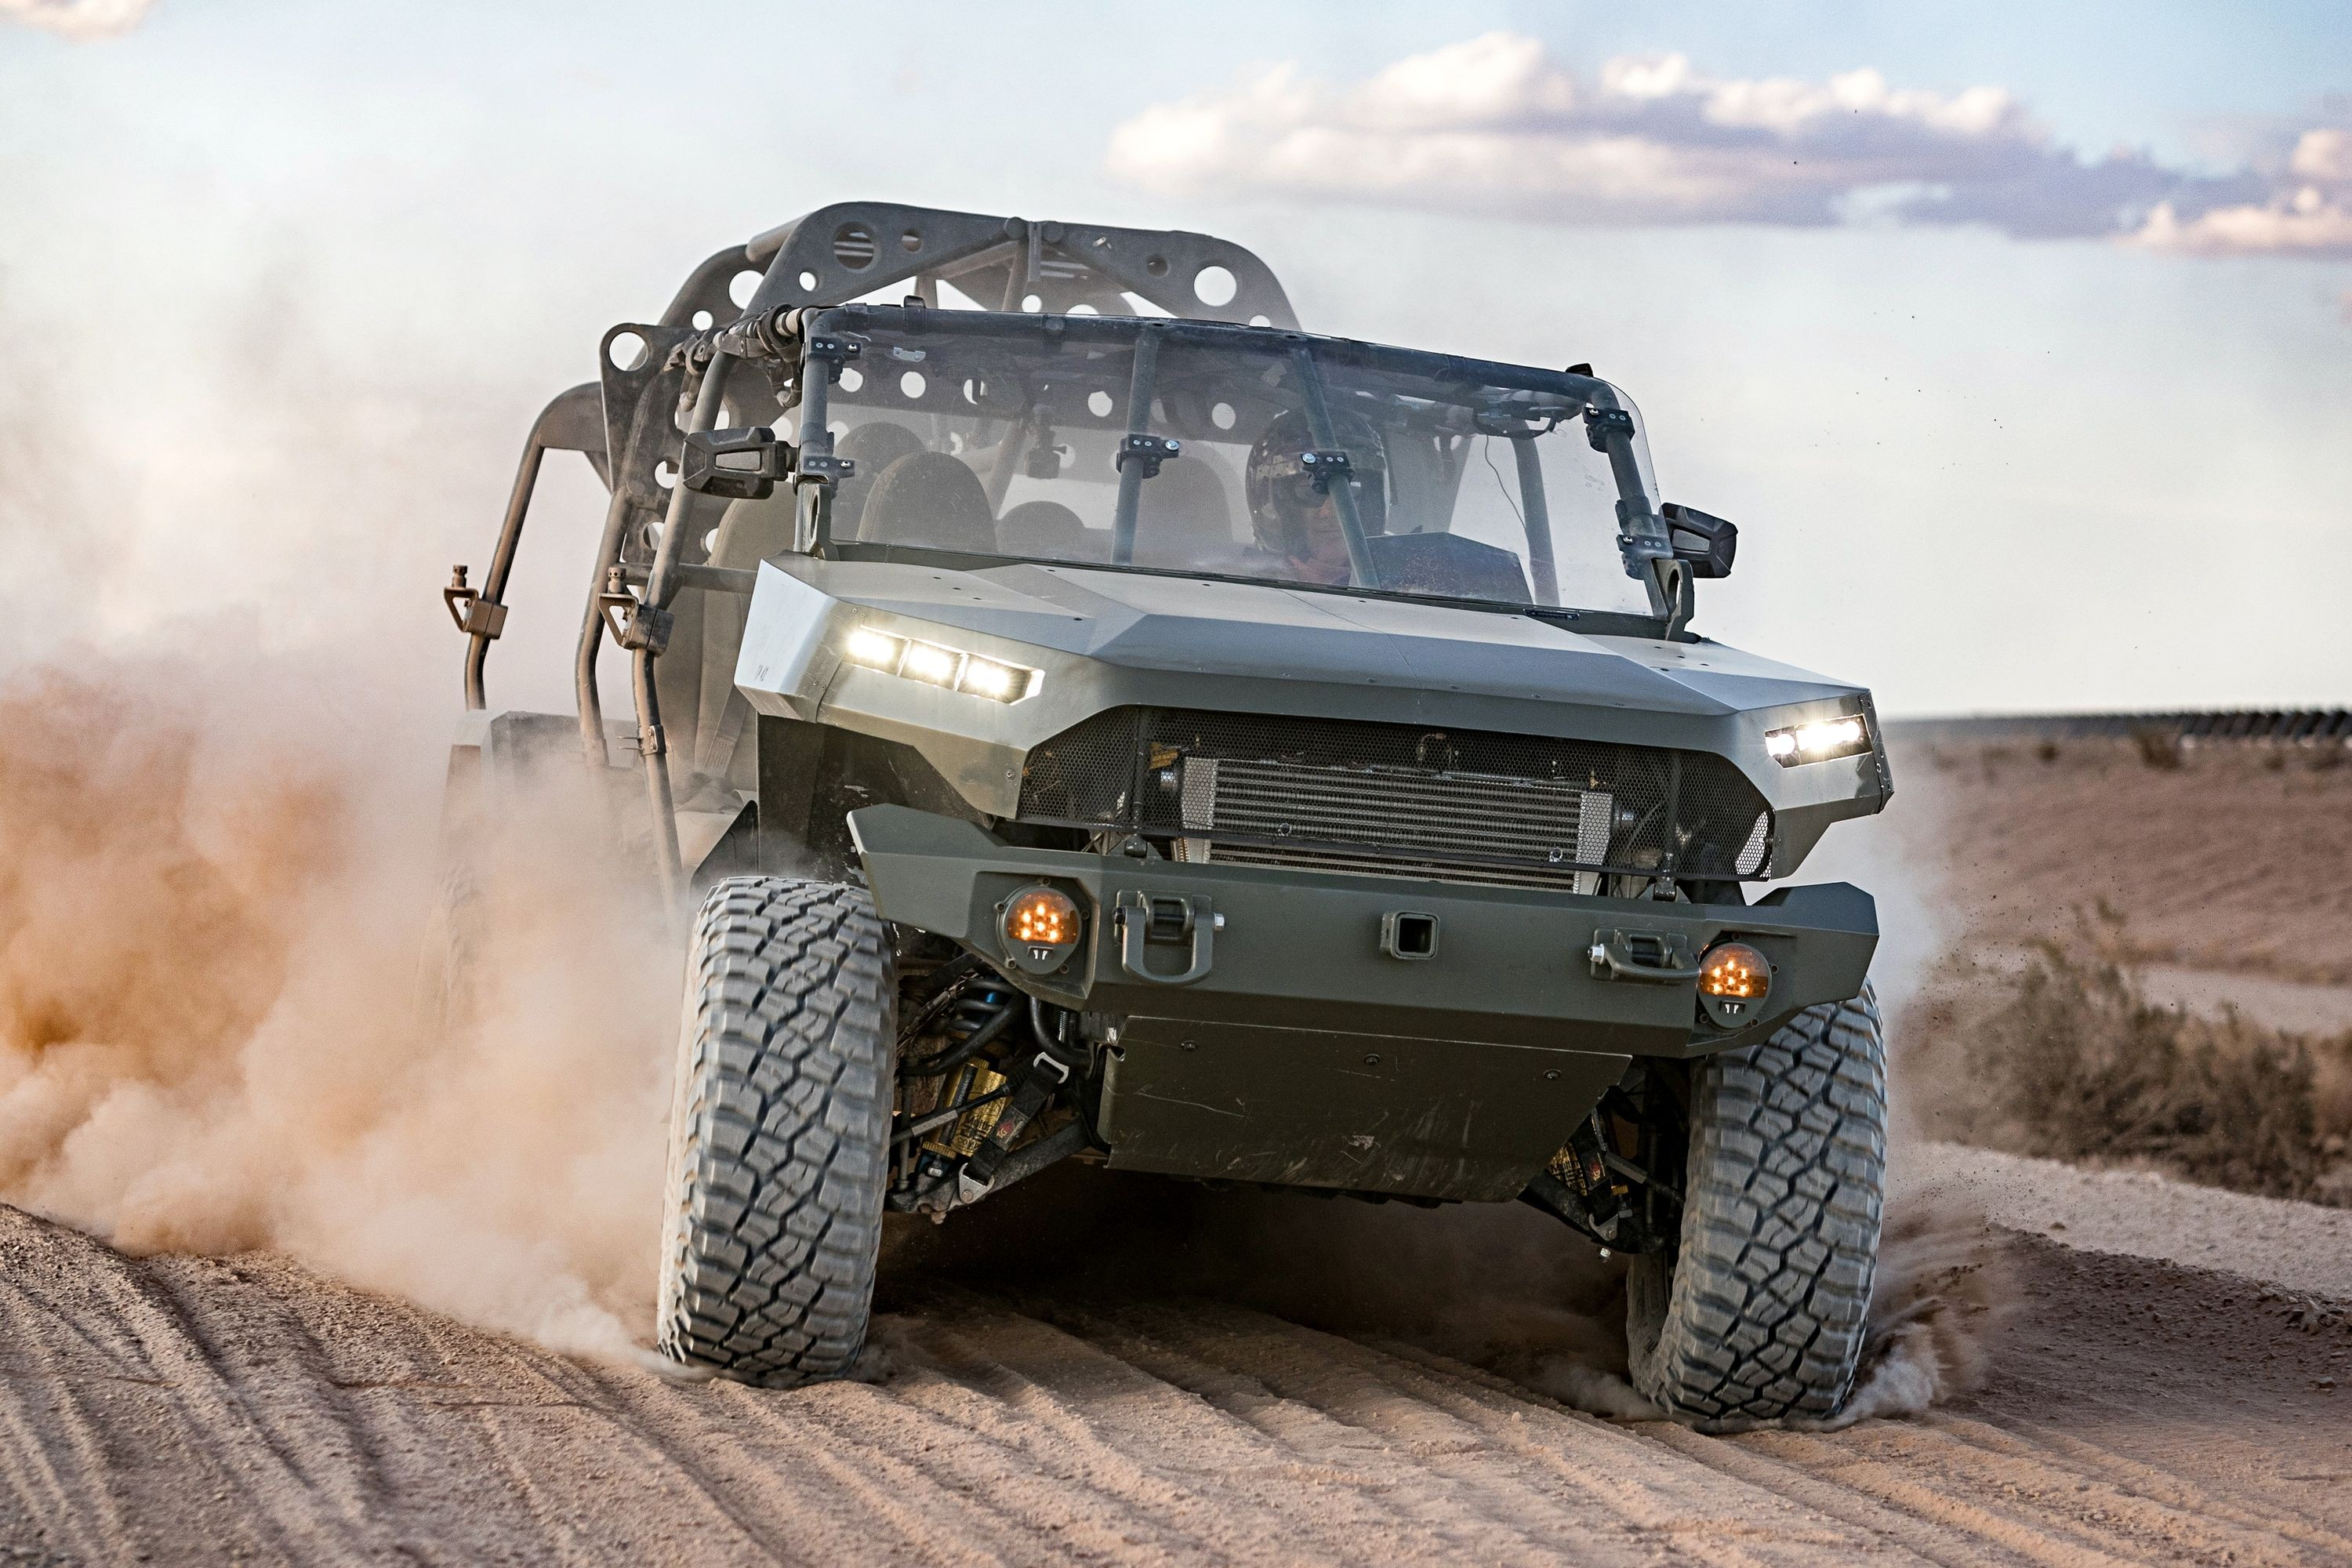 Best In The Desert is a hardcore sand racing event held in 2017–2019. Out of the 434 participant vehicles, only 4 have managed to overcome all 11 stages of the race, the rest dropping out eventually. The Chevy Colorado ZR2 was among the winners, though, provoking interest from the military.